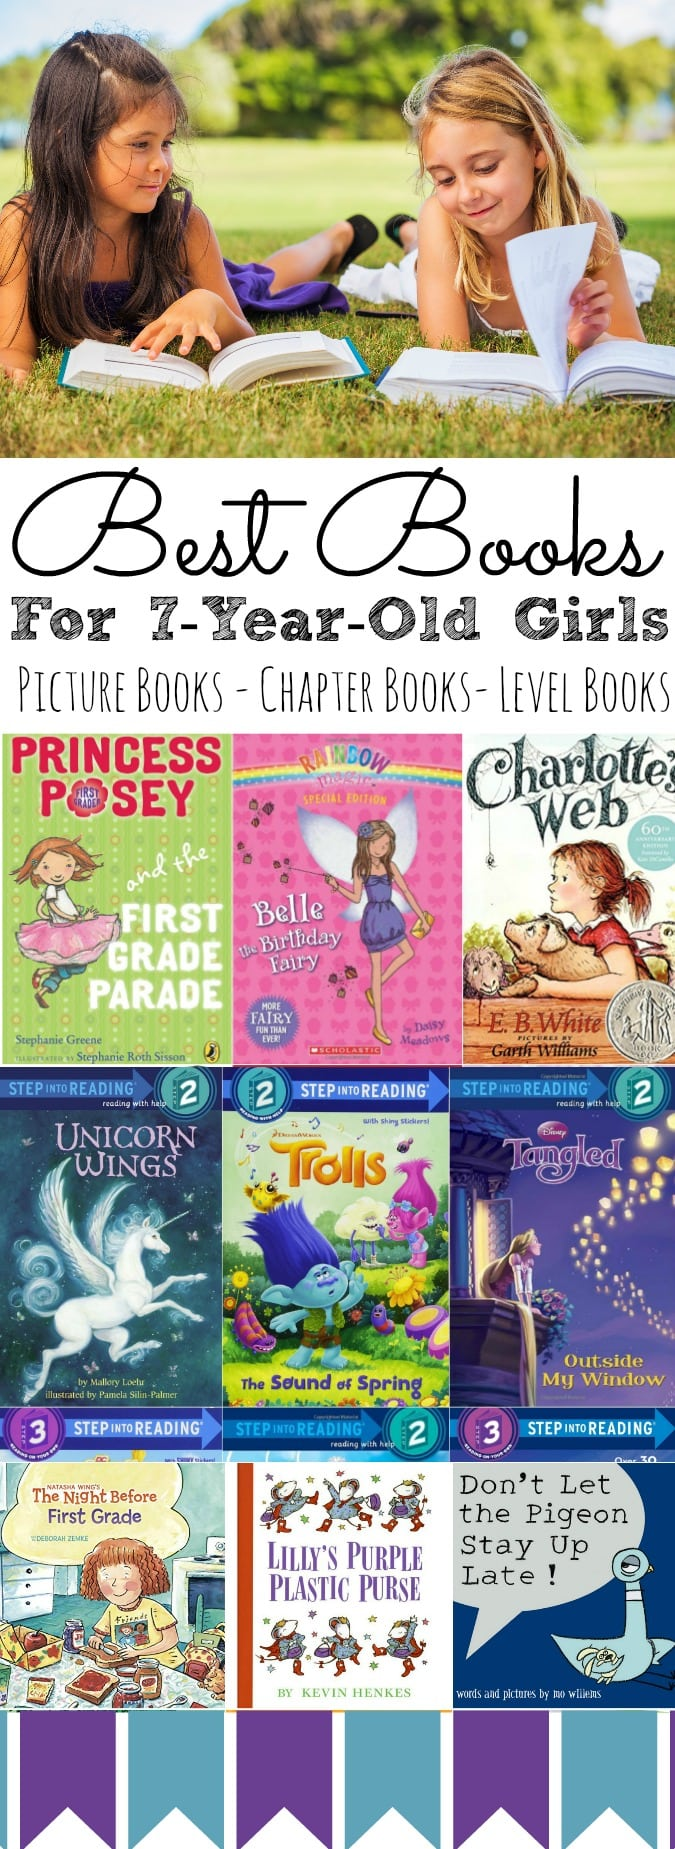 Best Books For 7 Year Old Girls | All Year Long - simplytodaylife.com